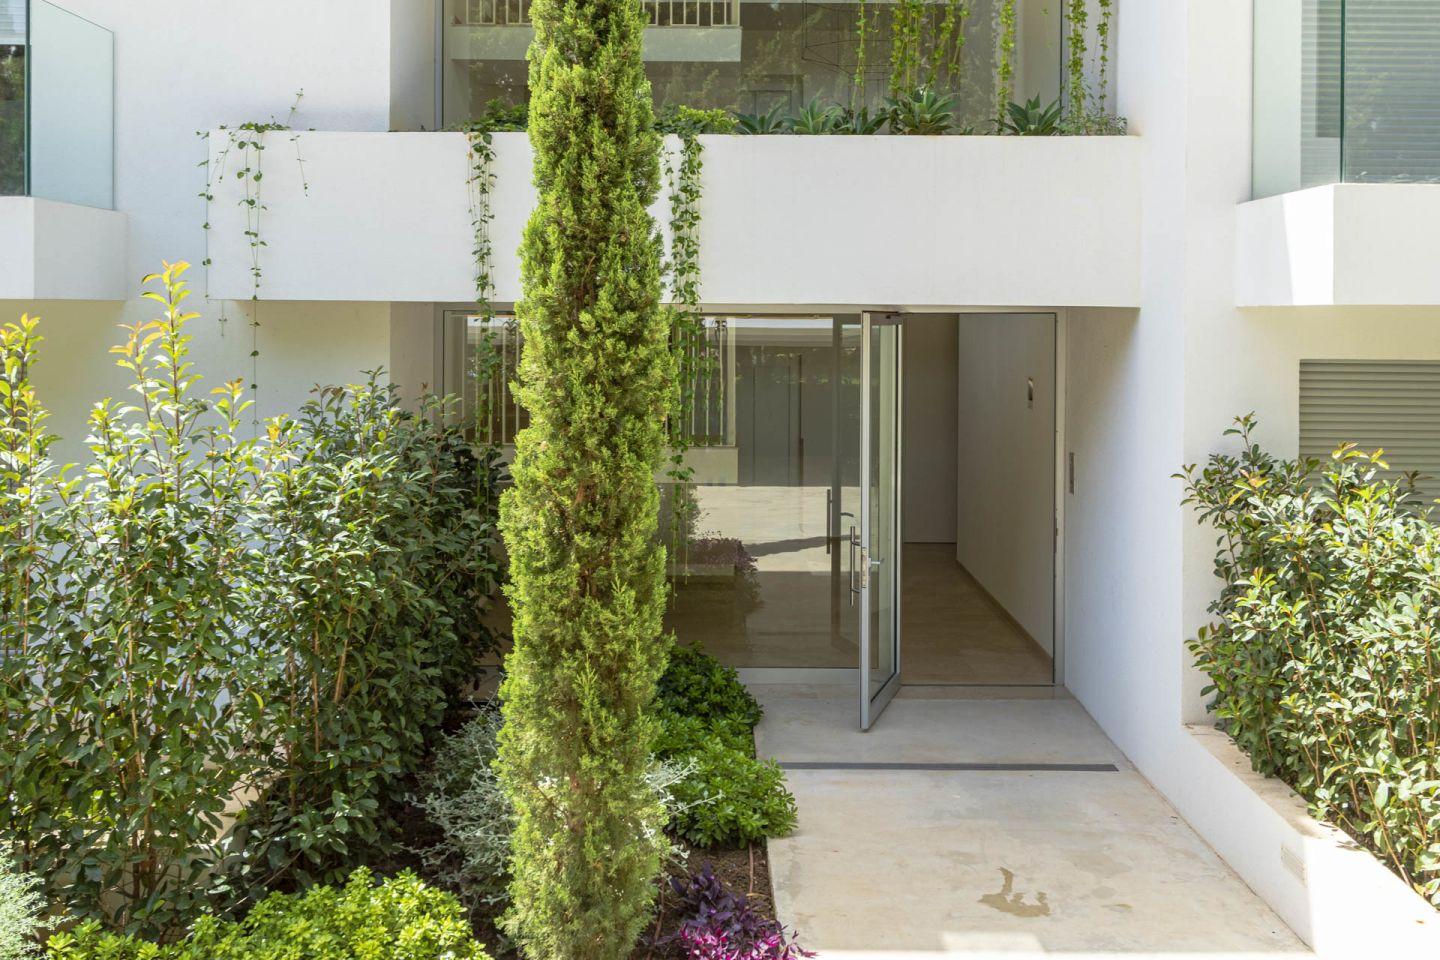 3 Bed Penthouse for sale in PUERTO POLLENSA 4